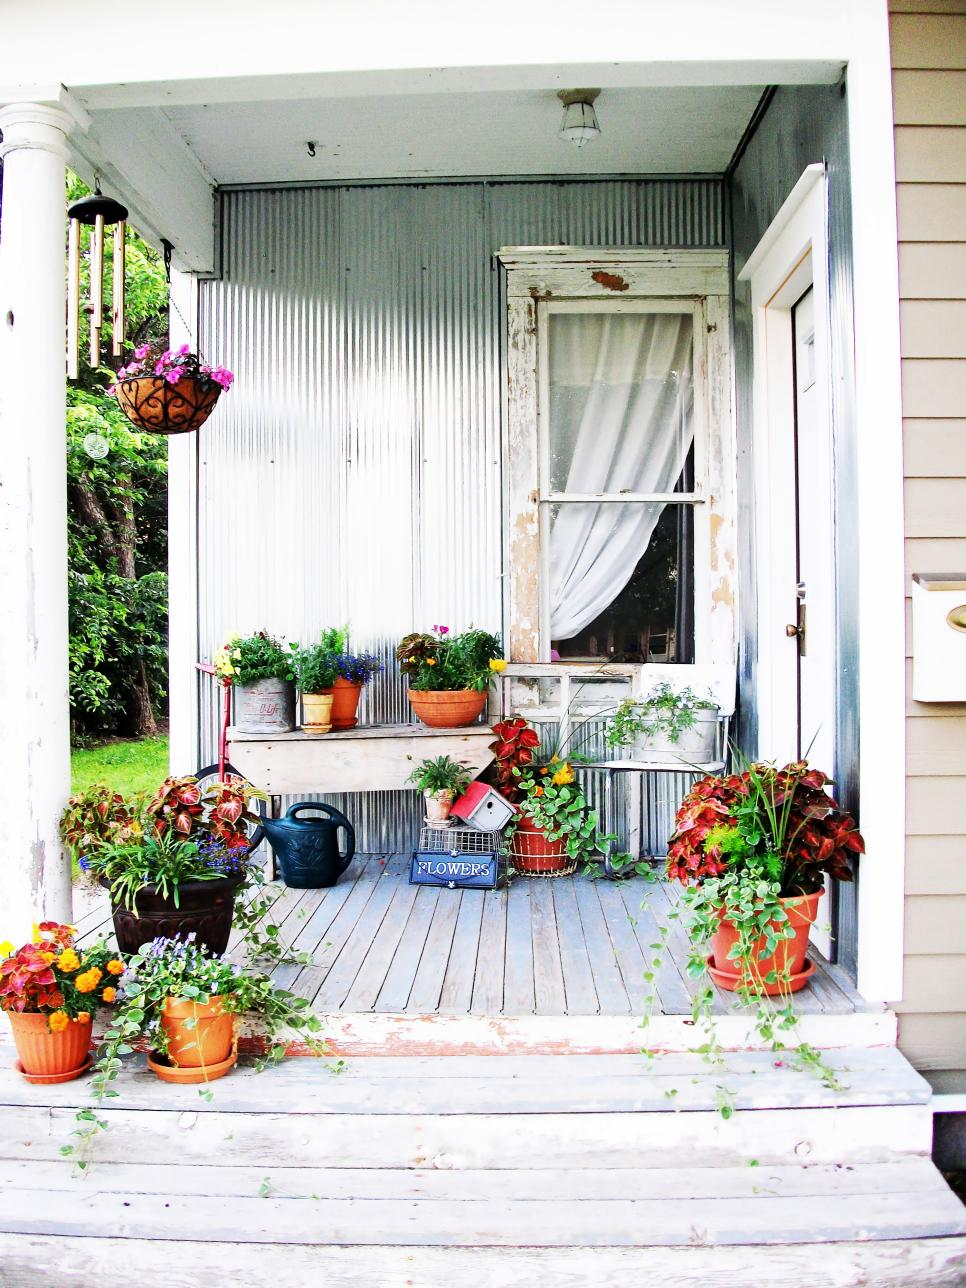 Shabby chic decorating ideas for porches and gardens hgtv Home design ideas shabby chic